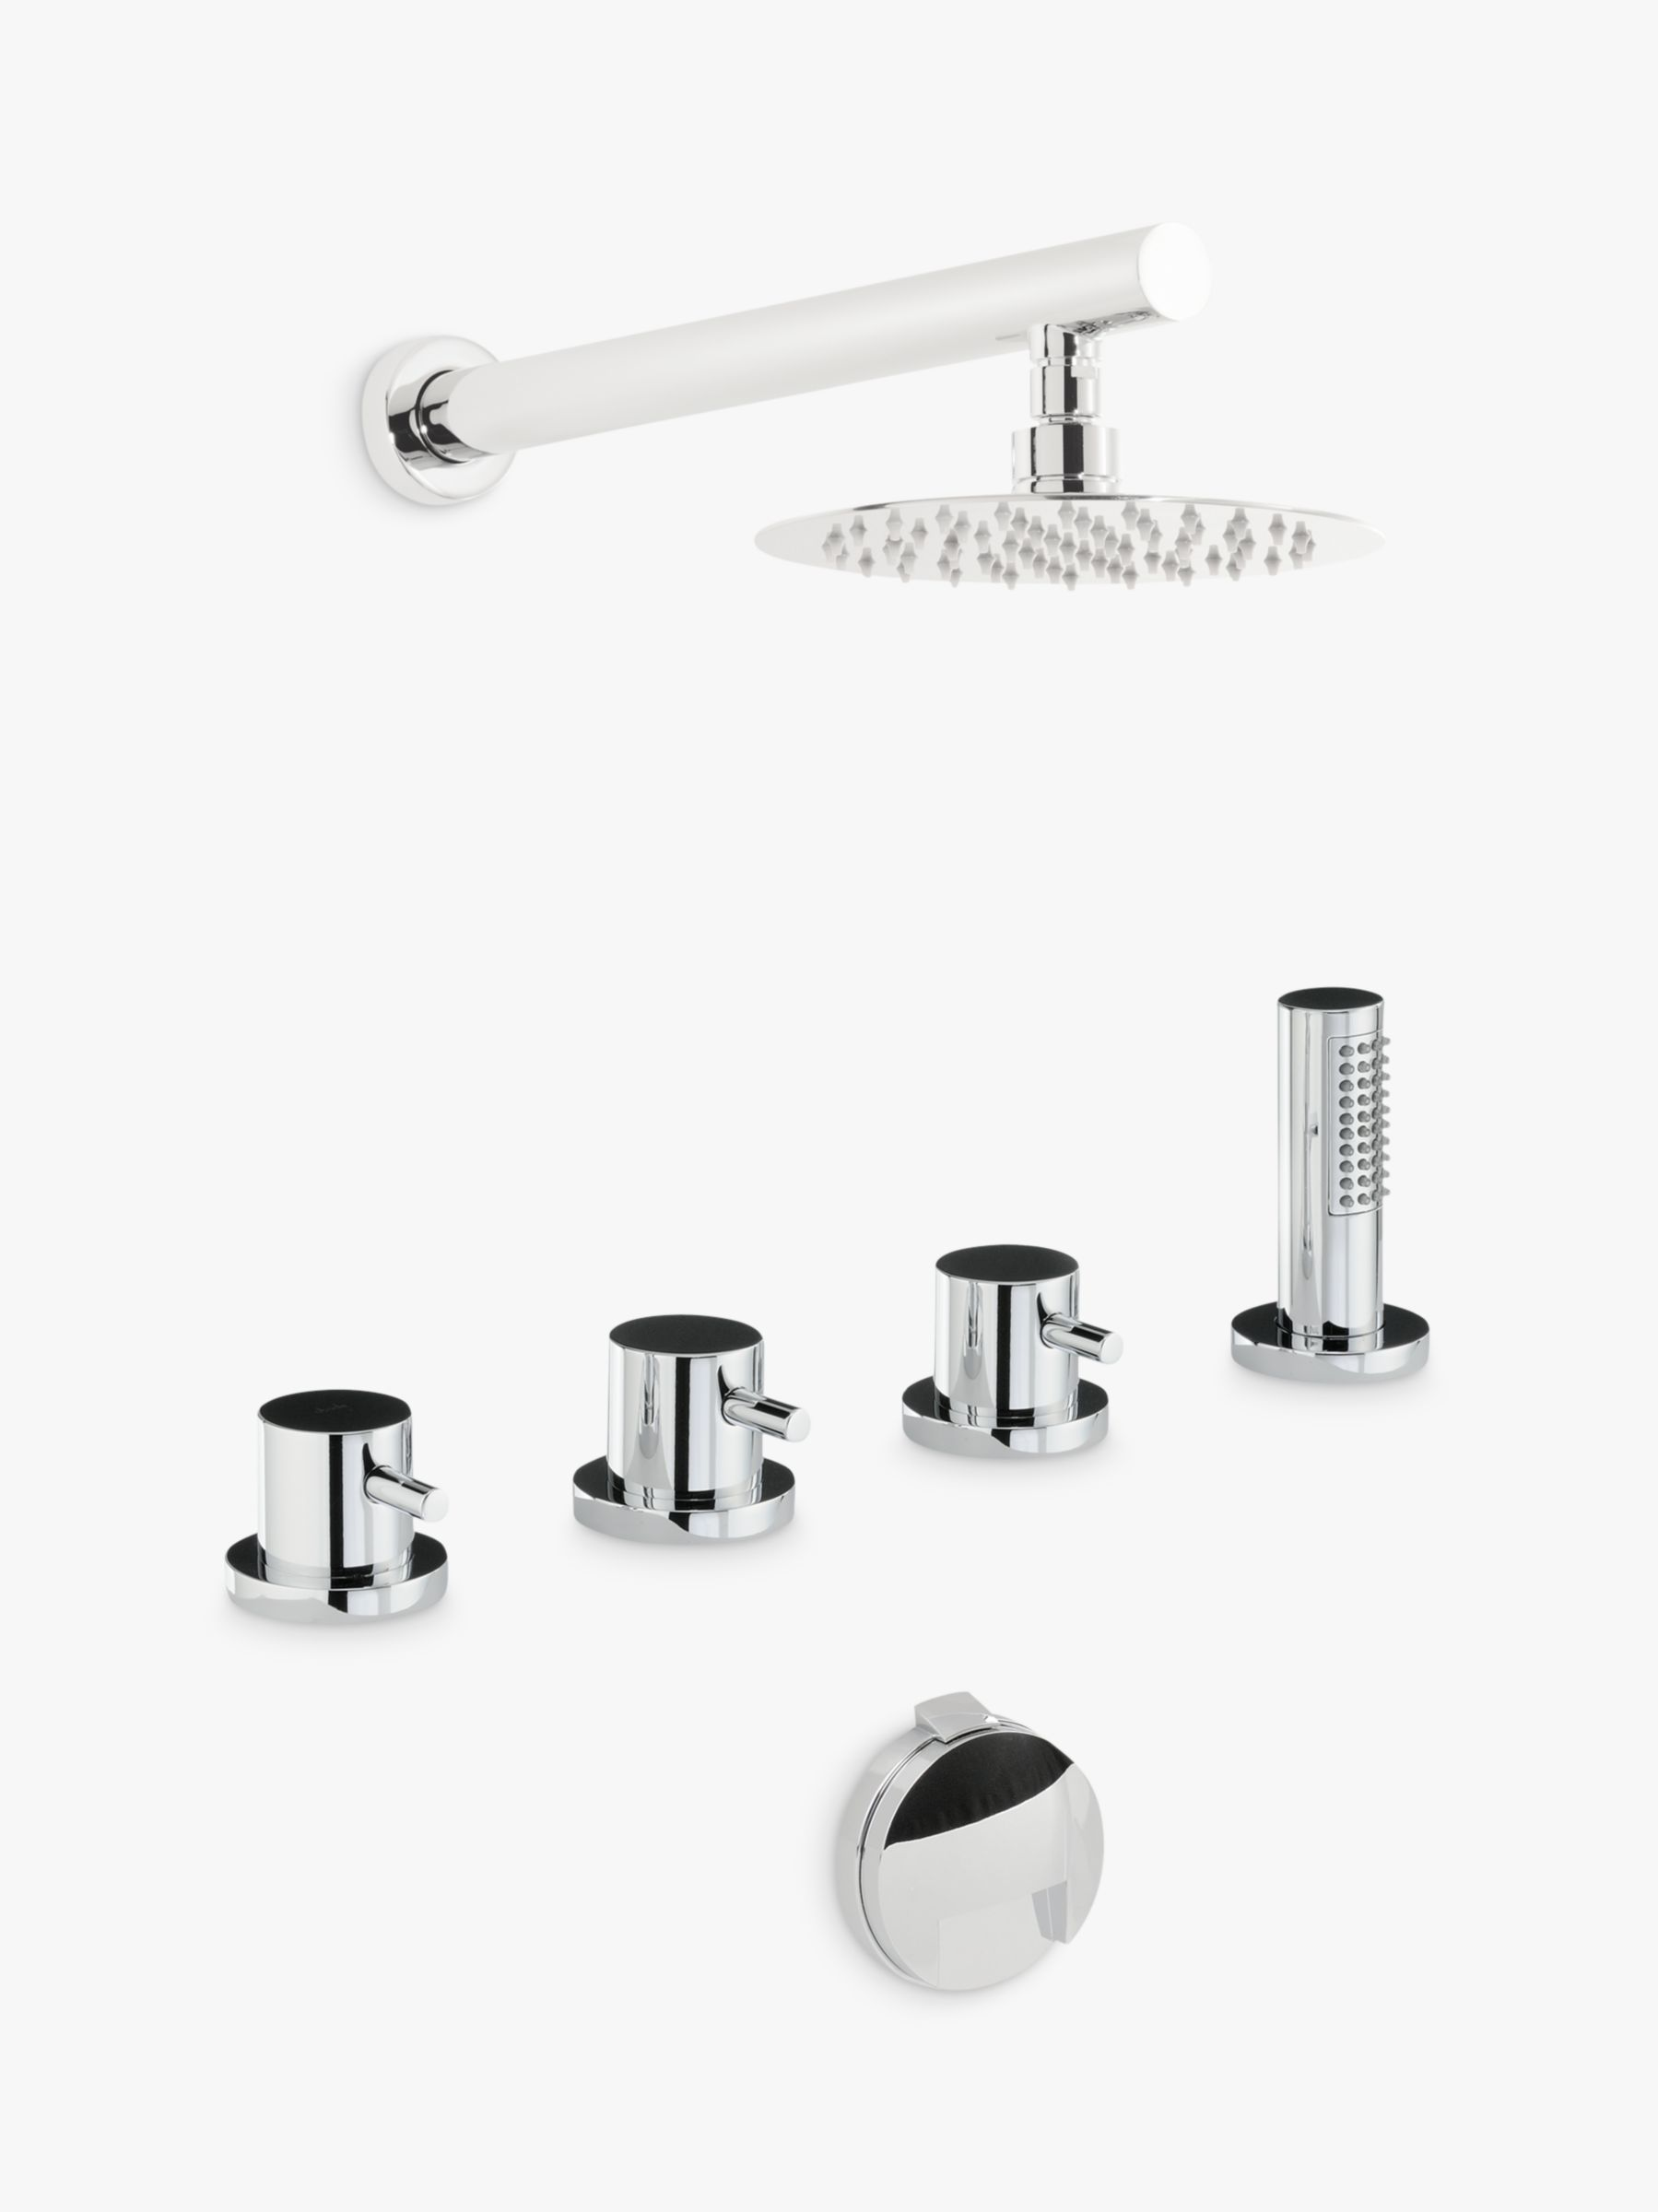 Abode Abode Harmonie Thermostatic Deck Mounted 4 Hole Bath Overflow Filler Kit with Wall Mounted Shower